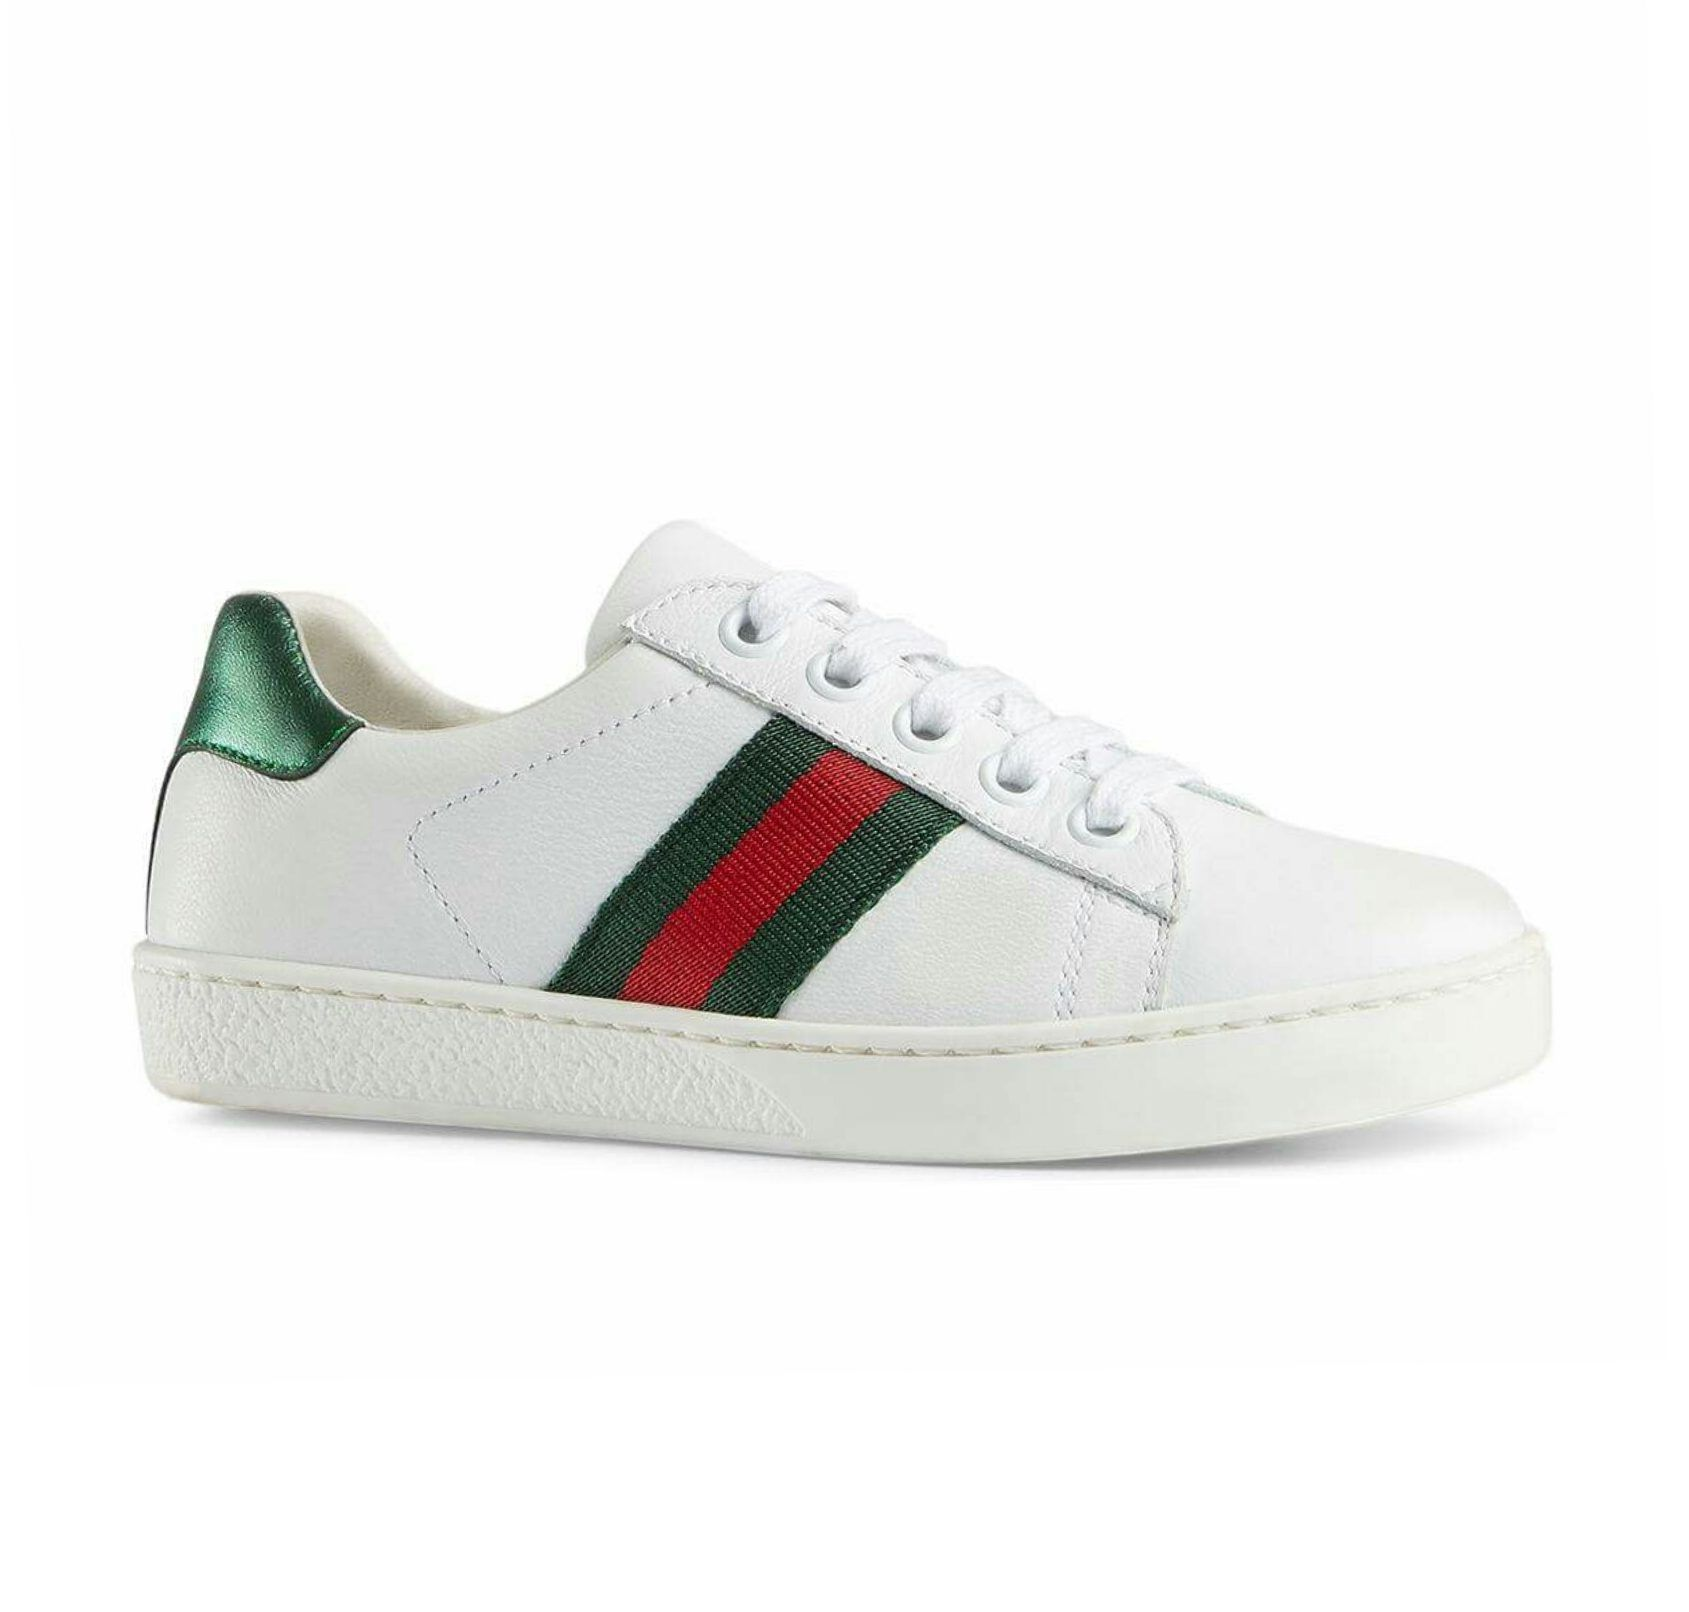 20 Off Gucci Ace Sneaker For Men Prices In Pakistan Gucci Shoes Gucci Ace Sneakers Online Shopping Shoes Gucci Shoes Price